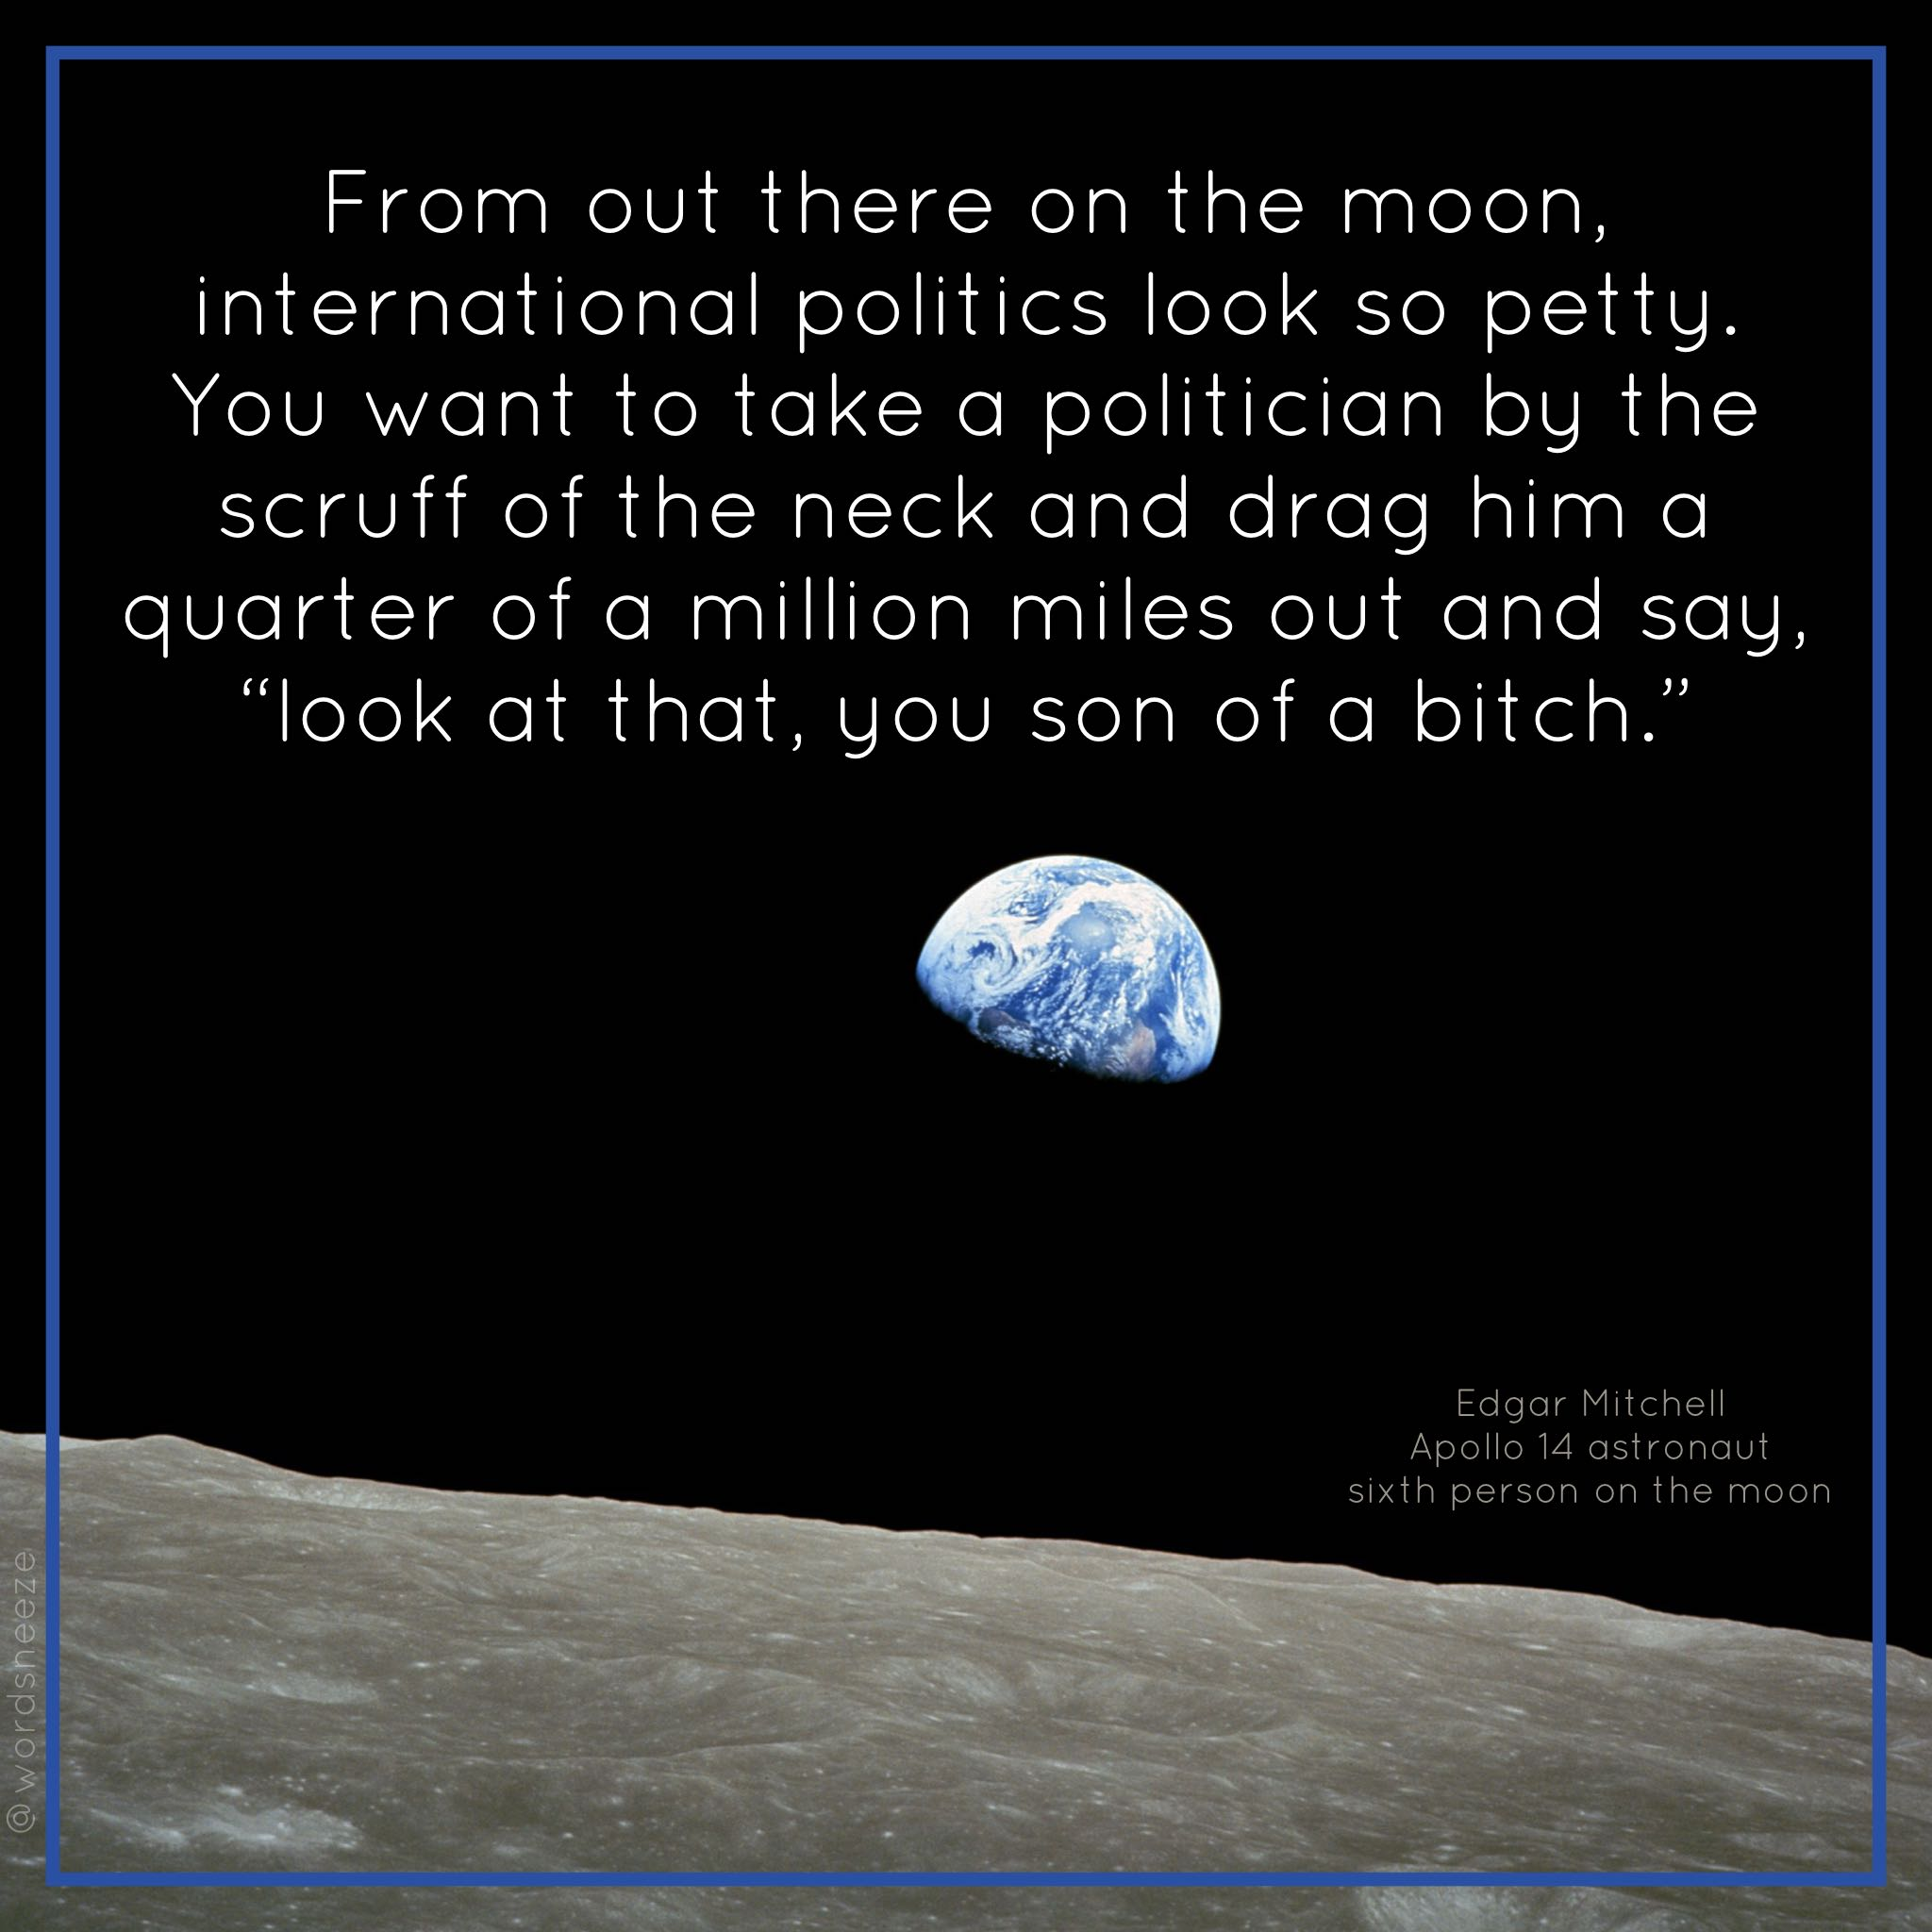 """From out there on the moon, international politics look so petty."" Edgar Mitchell, Apollo 14 [2048 x 2048]"